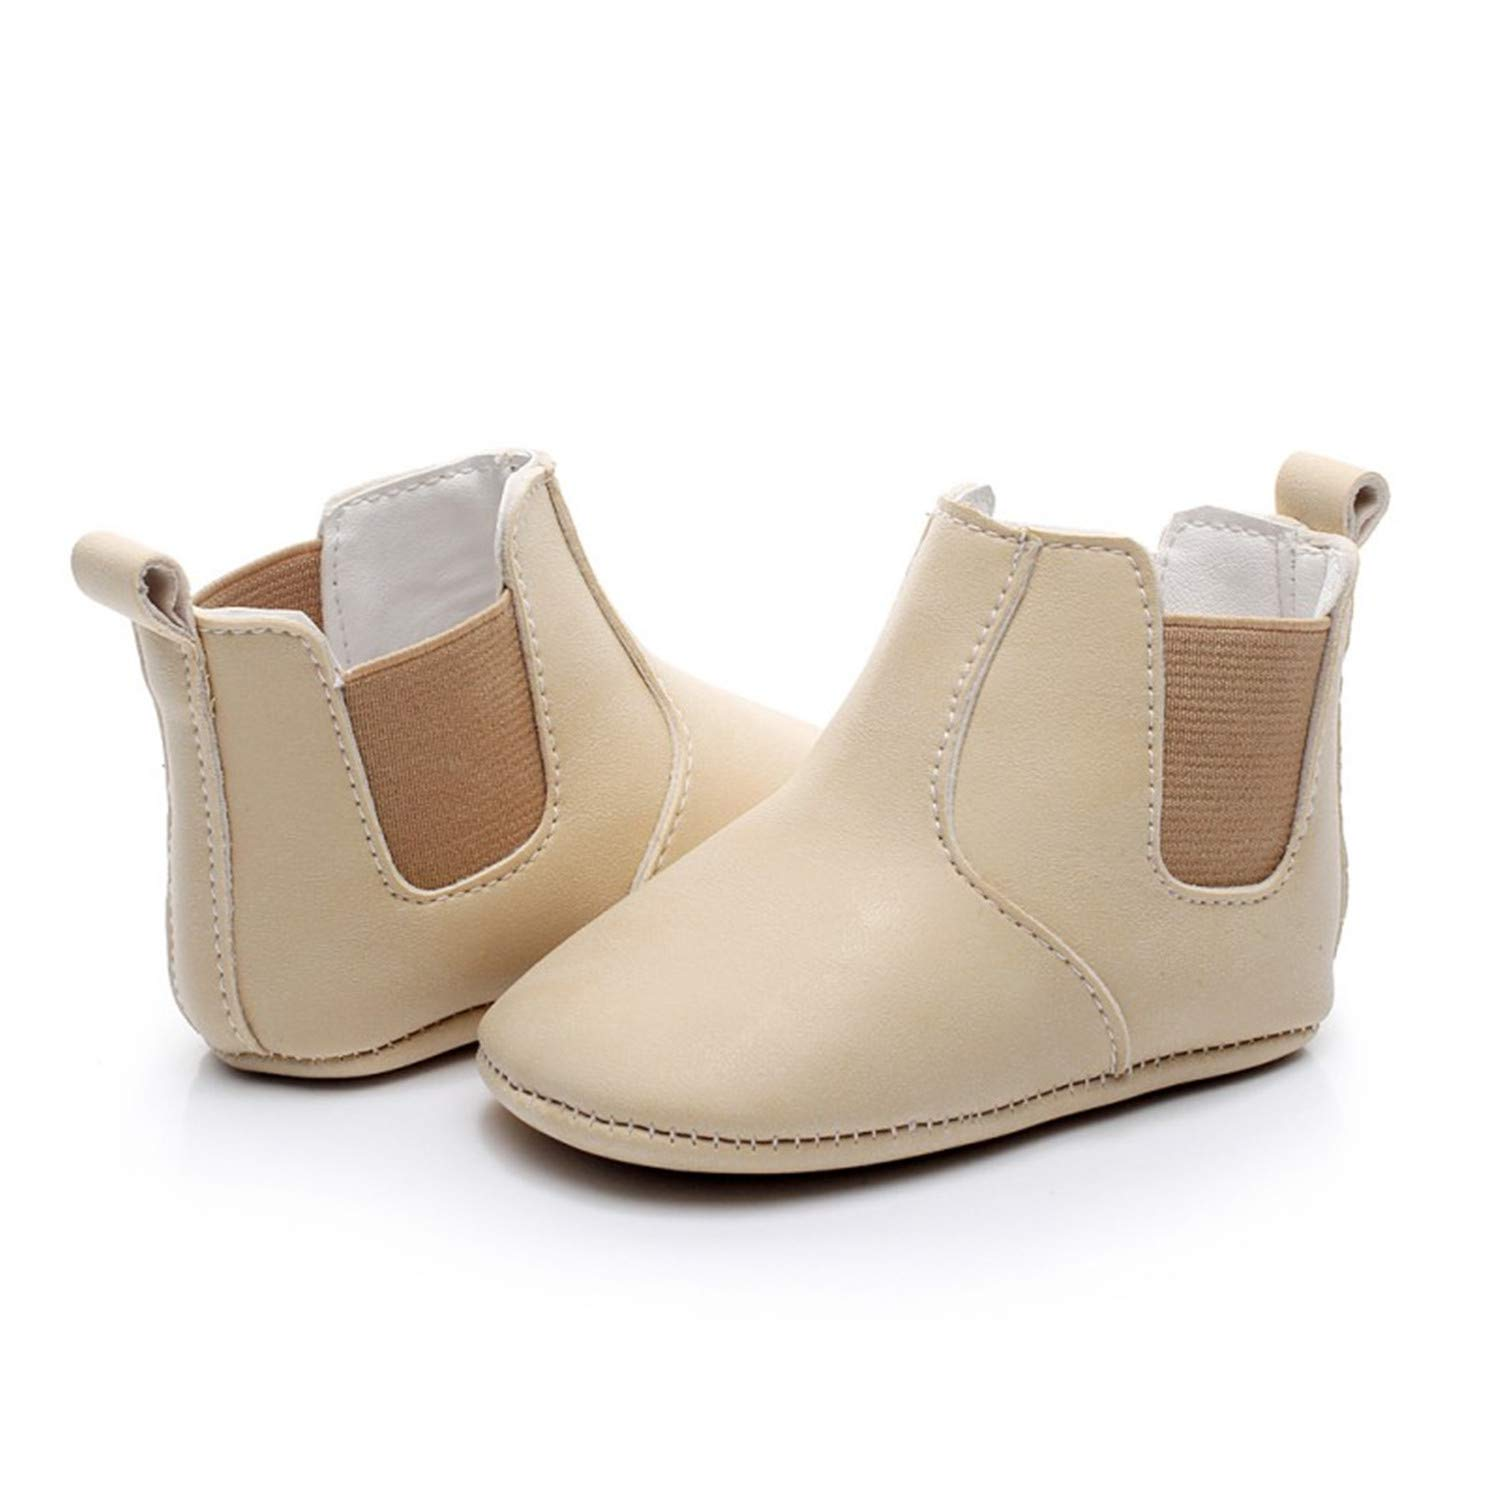 Fralina Baby Leather Warm Winter Shoes Newborn Girls First Walkers Infant Toddler Soft Soled Anti-Slip Boots Booties